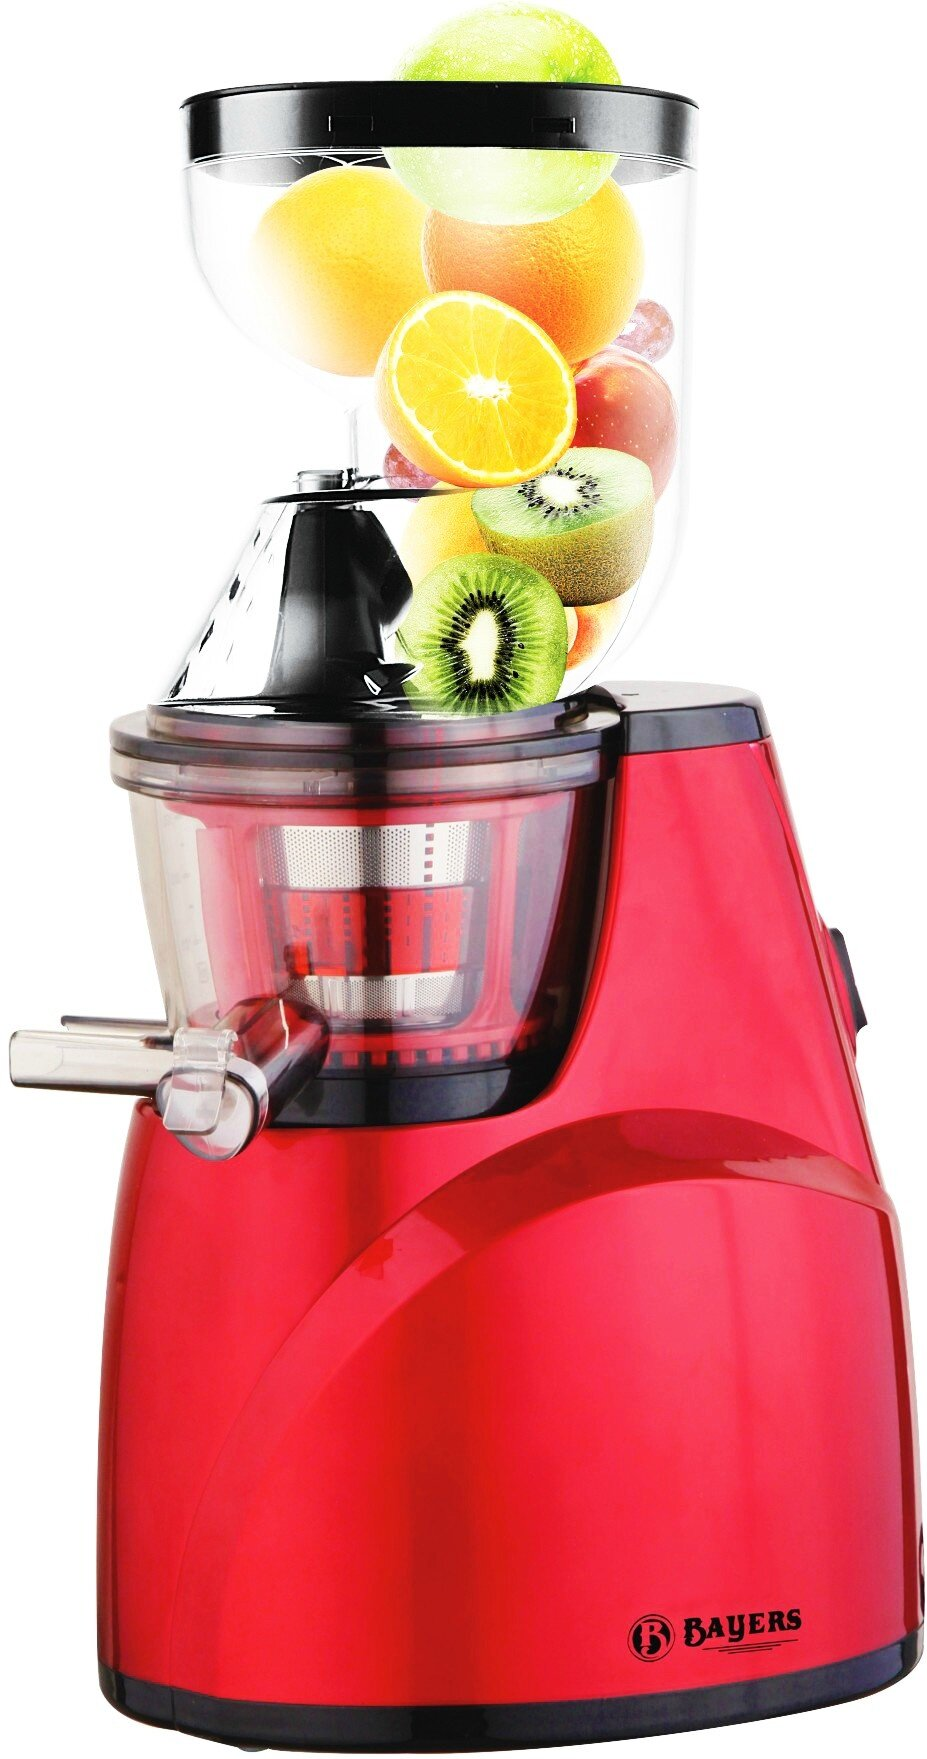 Bayers Whole Fruit Slow Juicer : Bayers Whole Fruit Slow Juicer SJ-25 Lazada Malaysia